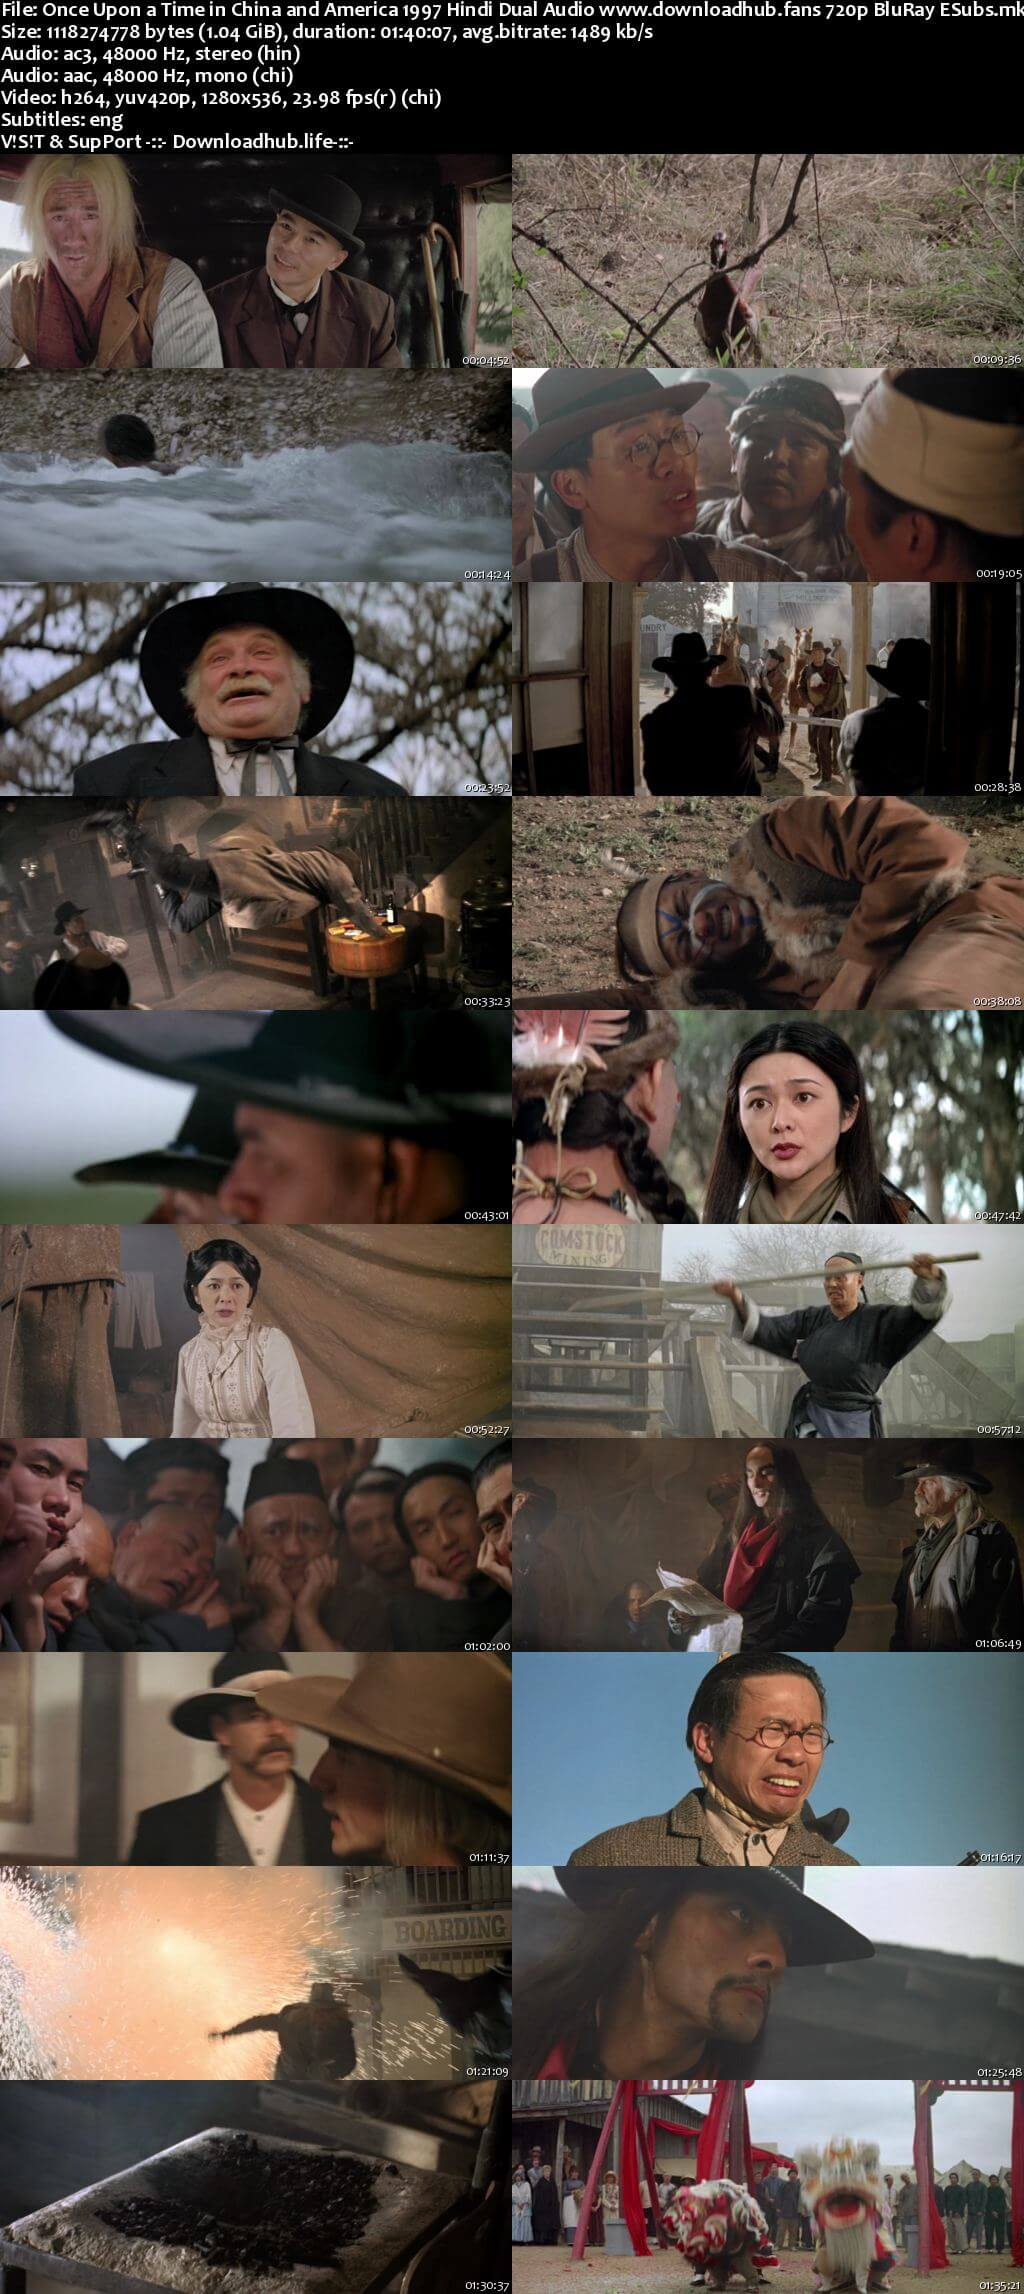 Once Upon a Time in China and America 1997 Hindi Dual Audio 720p BluRay ESubs